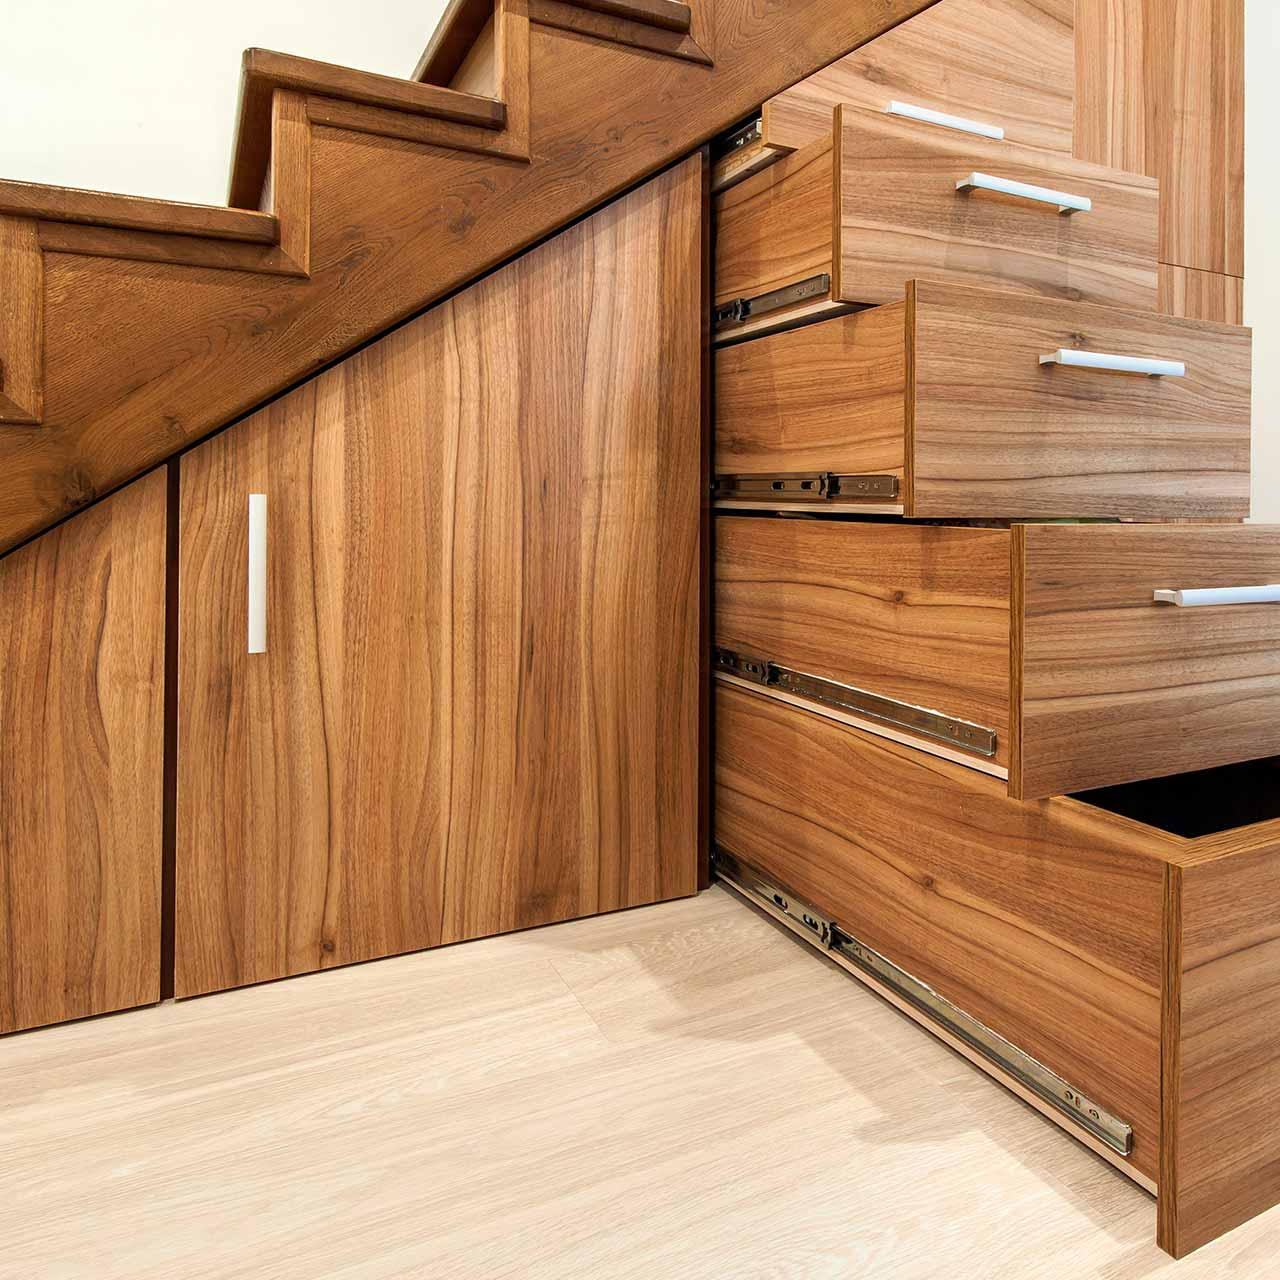 Storage Space Under your Stairs is Valuable